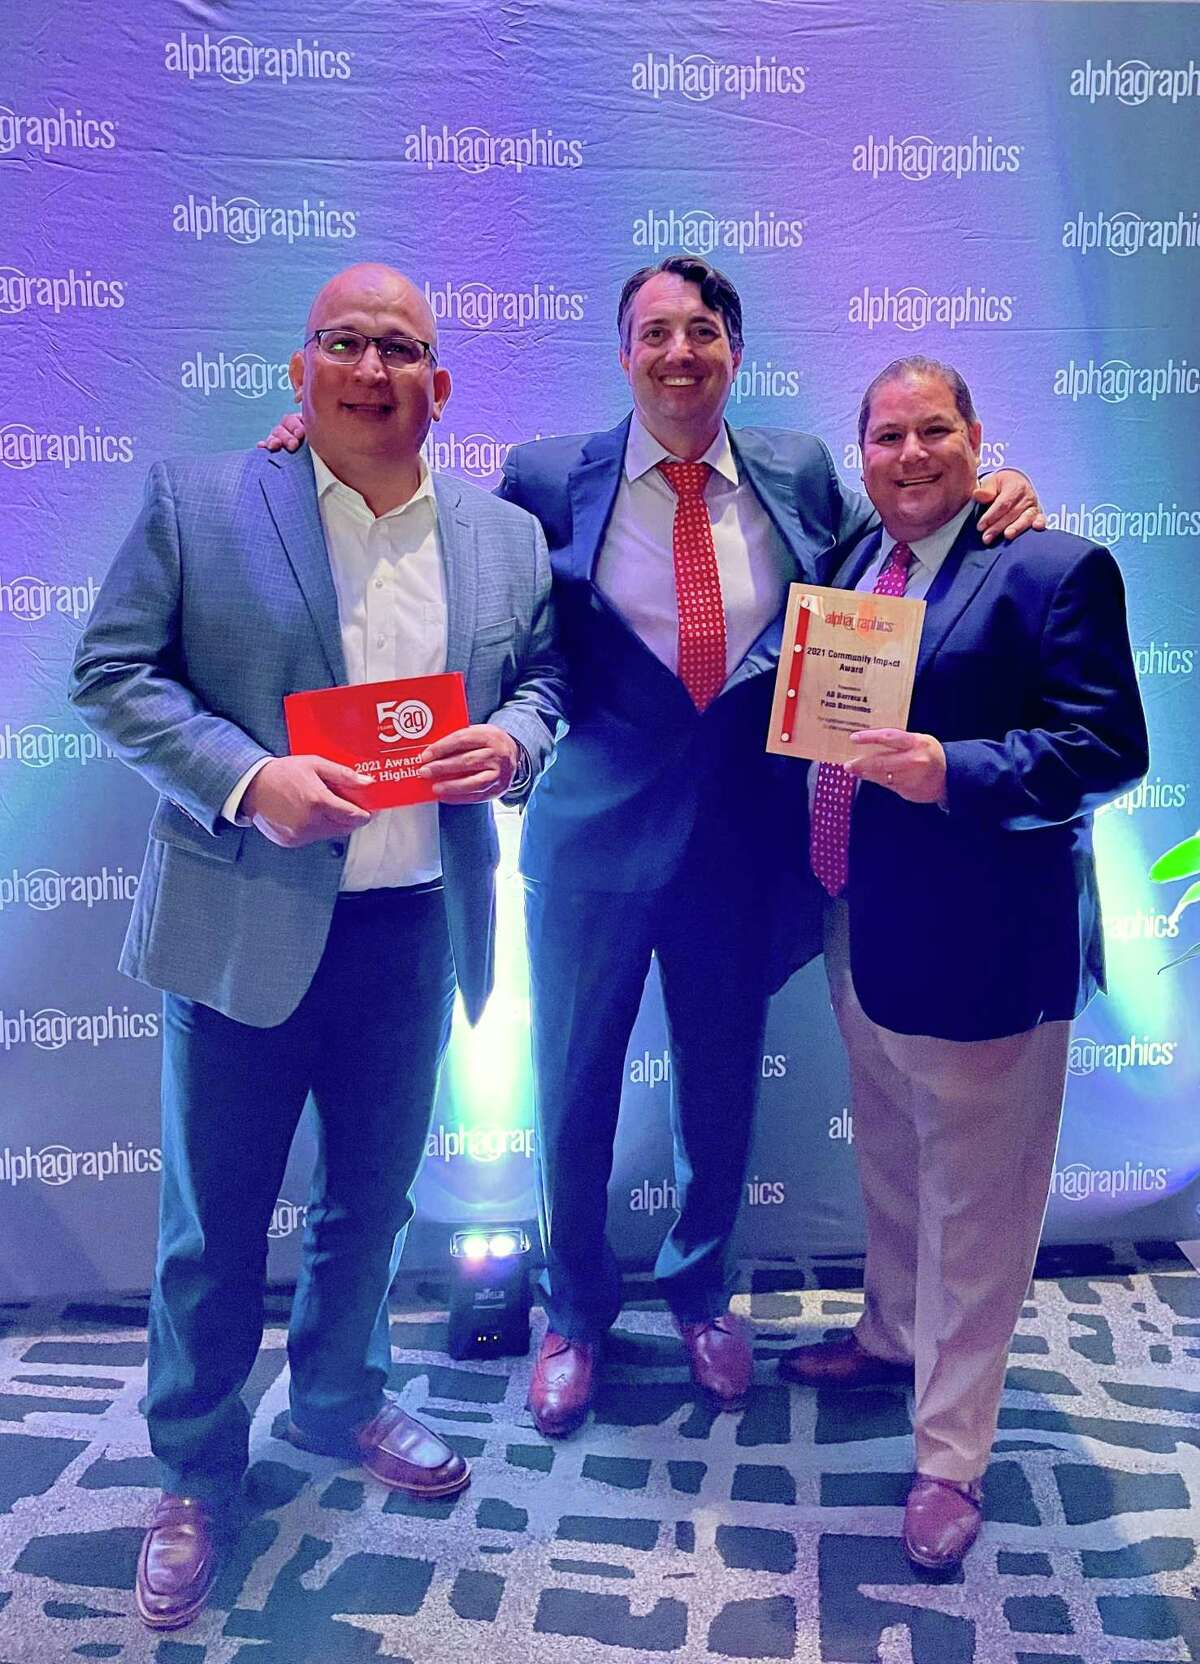 Local AlphaGraphics franchisees A.B. Barrera and Paco Barrientos pose with AlphaGraphics President Ryan Farris.